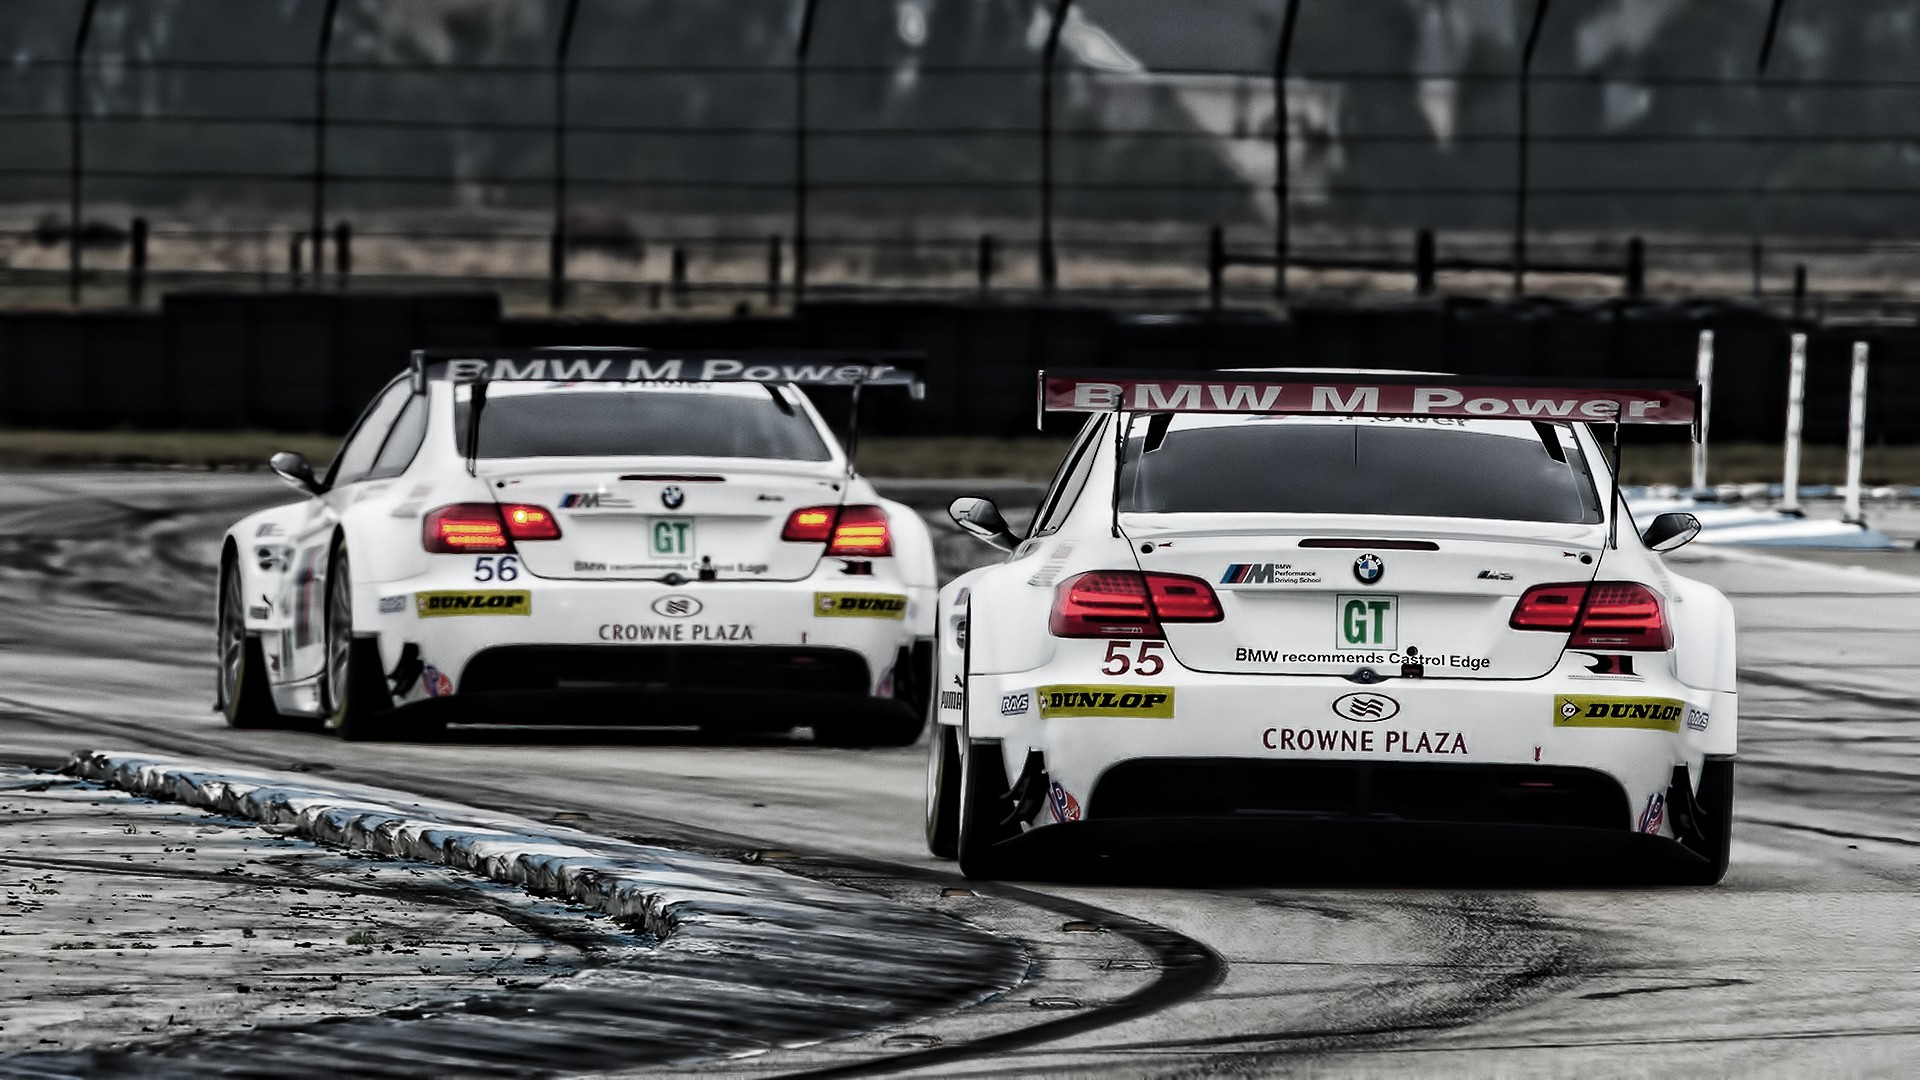 Race Car Wallpapers 67 Images